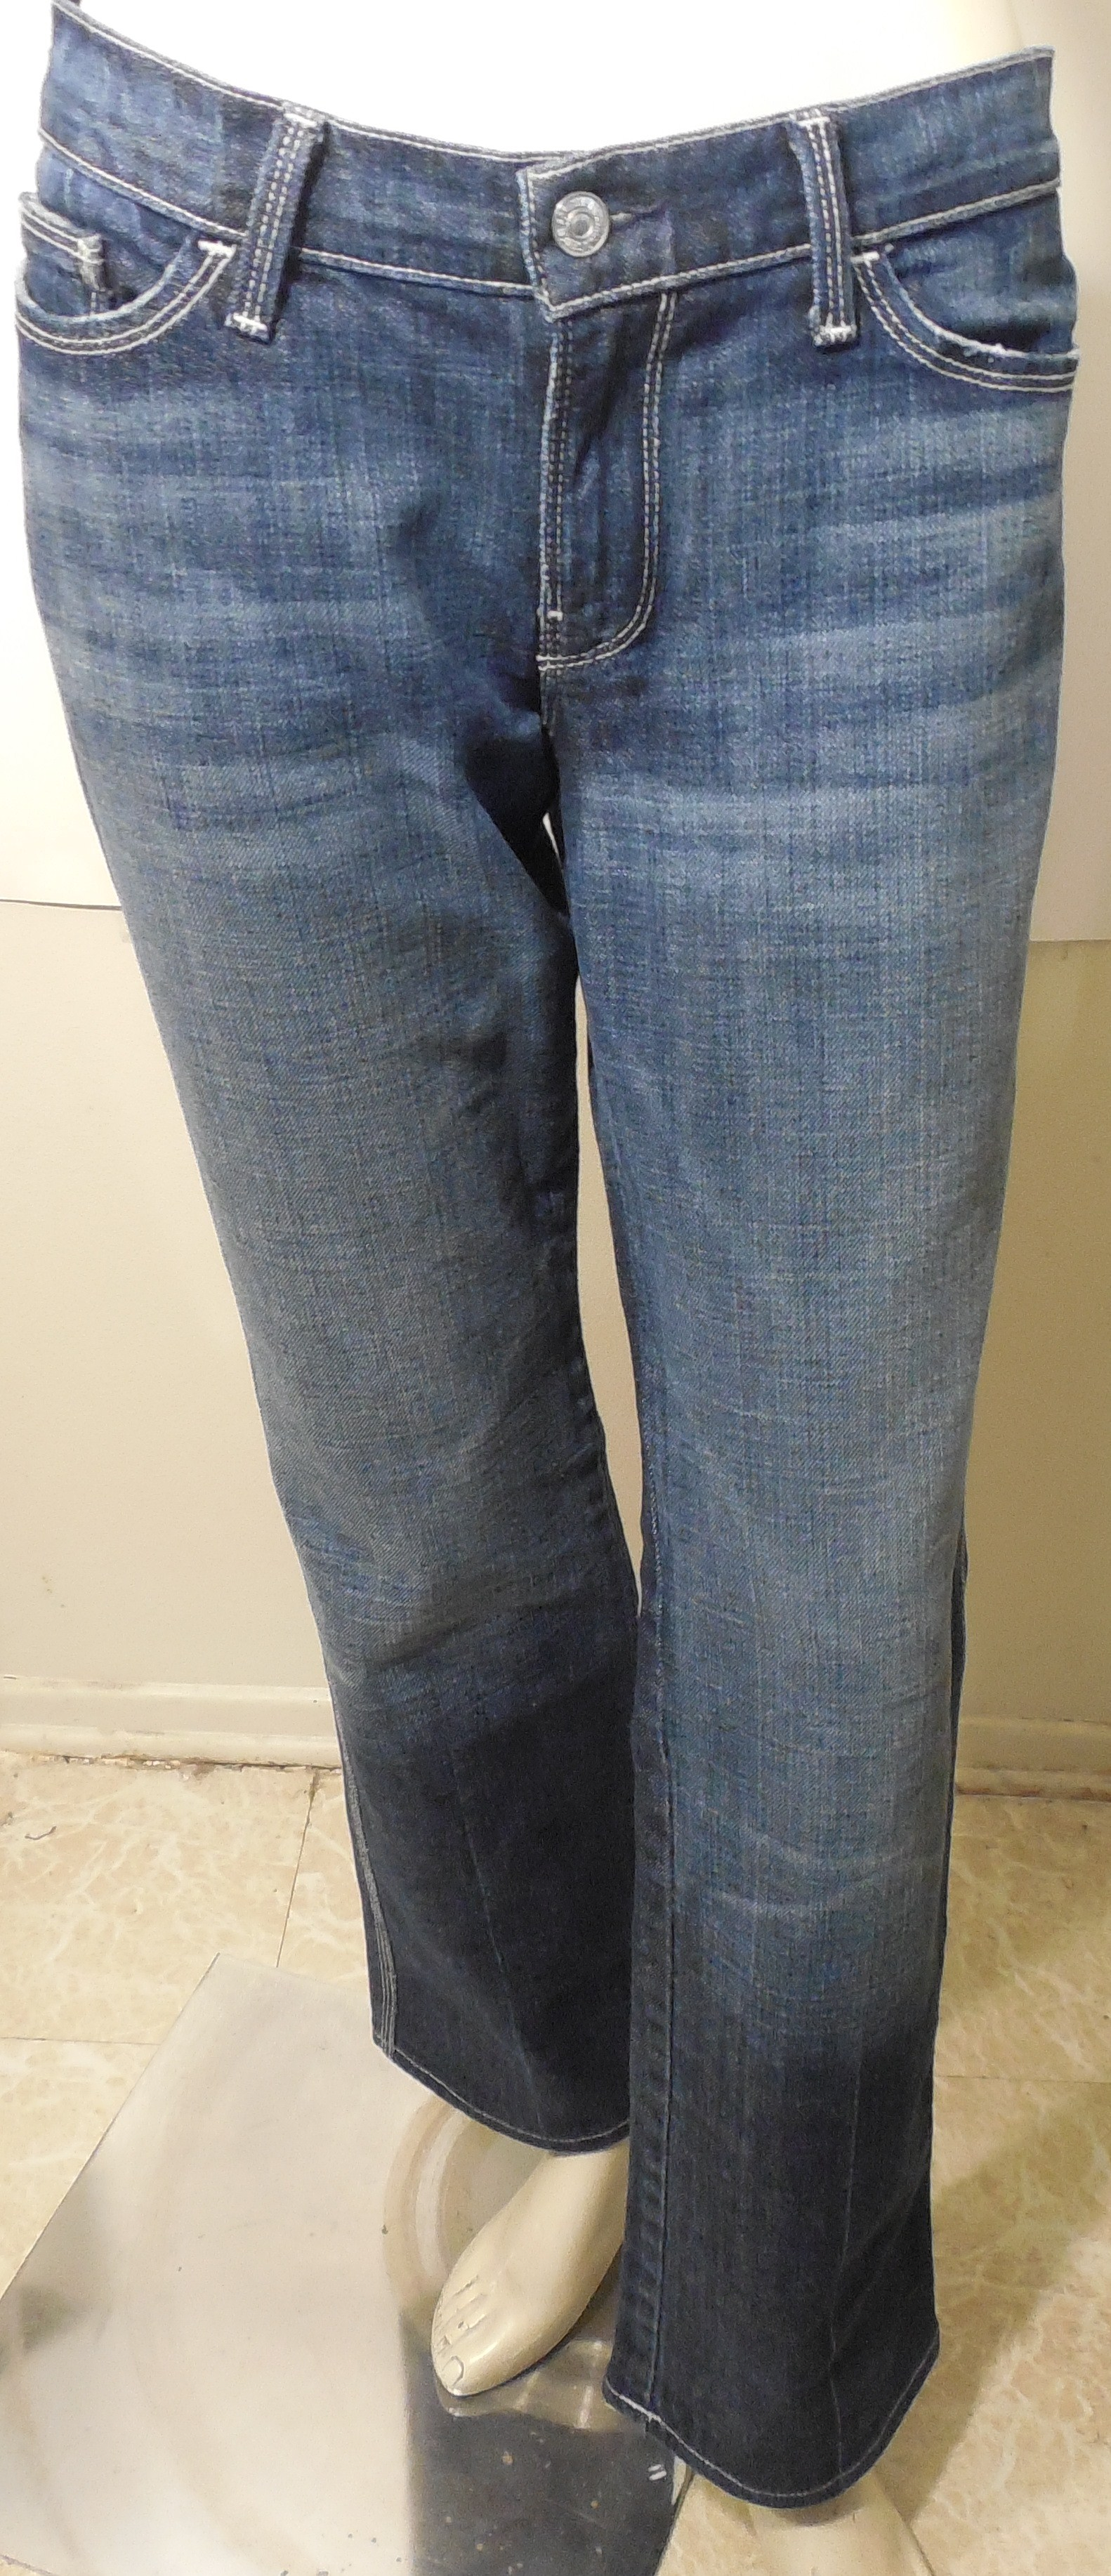 "Womens 7 For All Mankind (colette)boot Cut Jeans Size 3230"" Inseam Distressed"